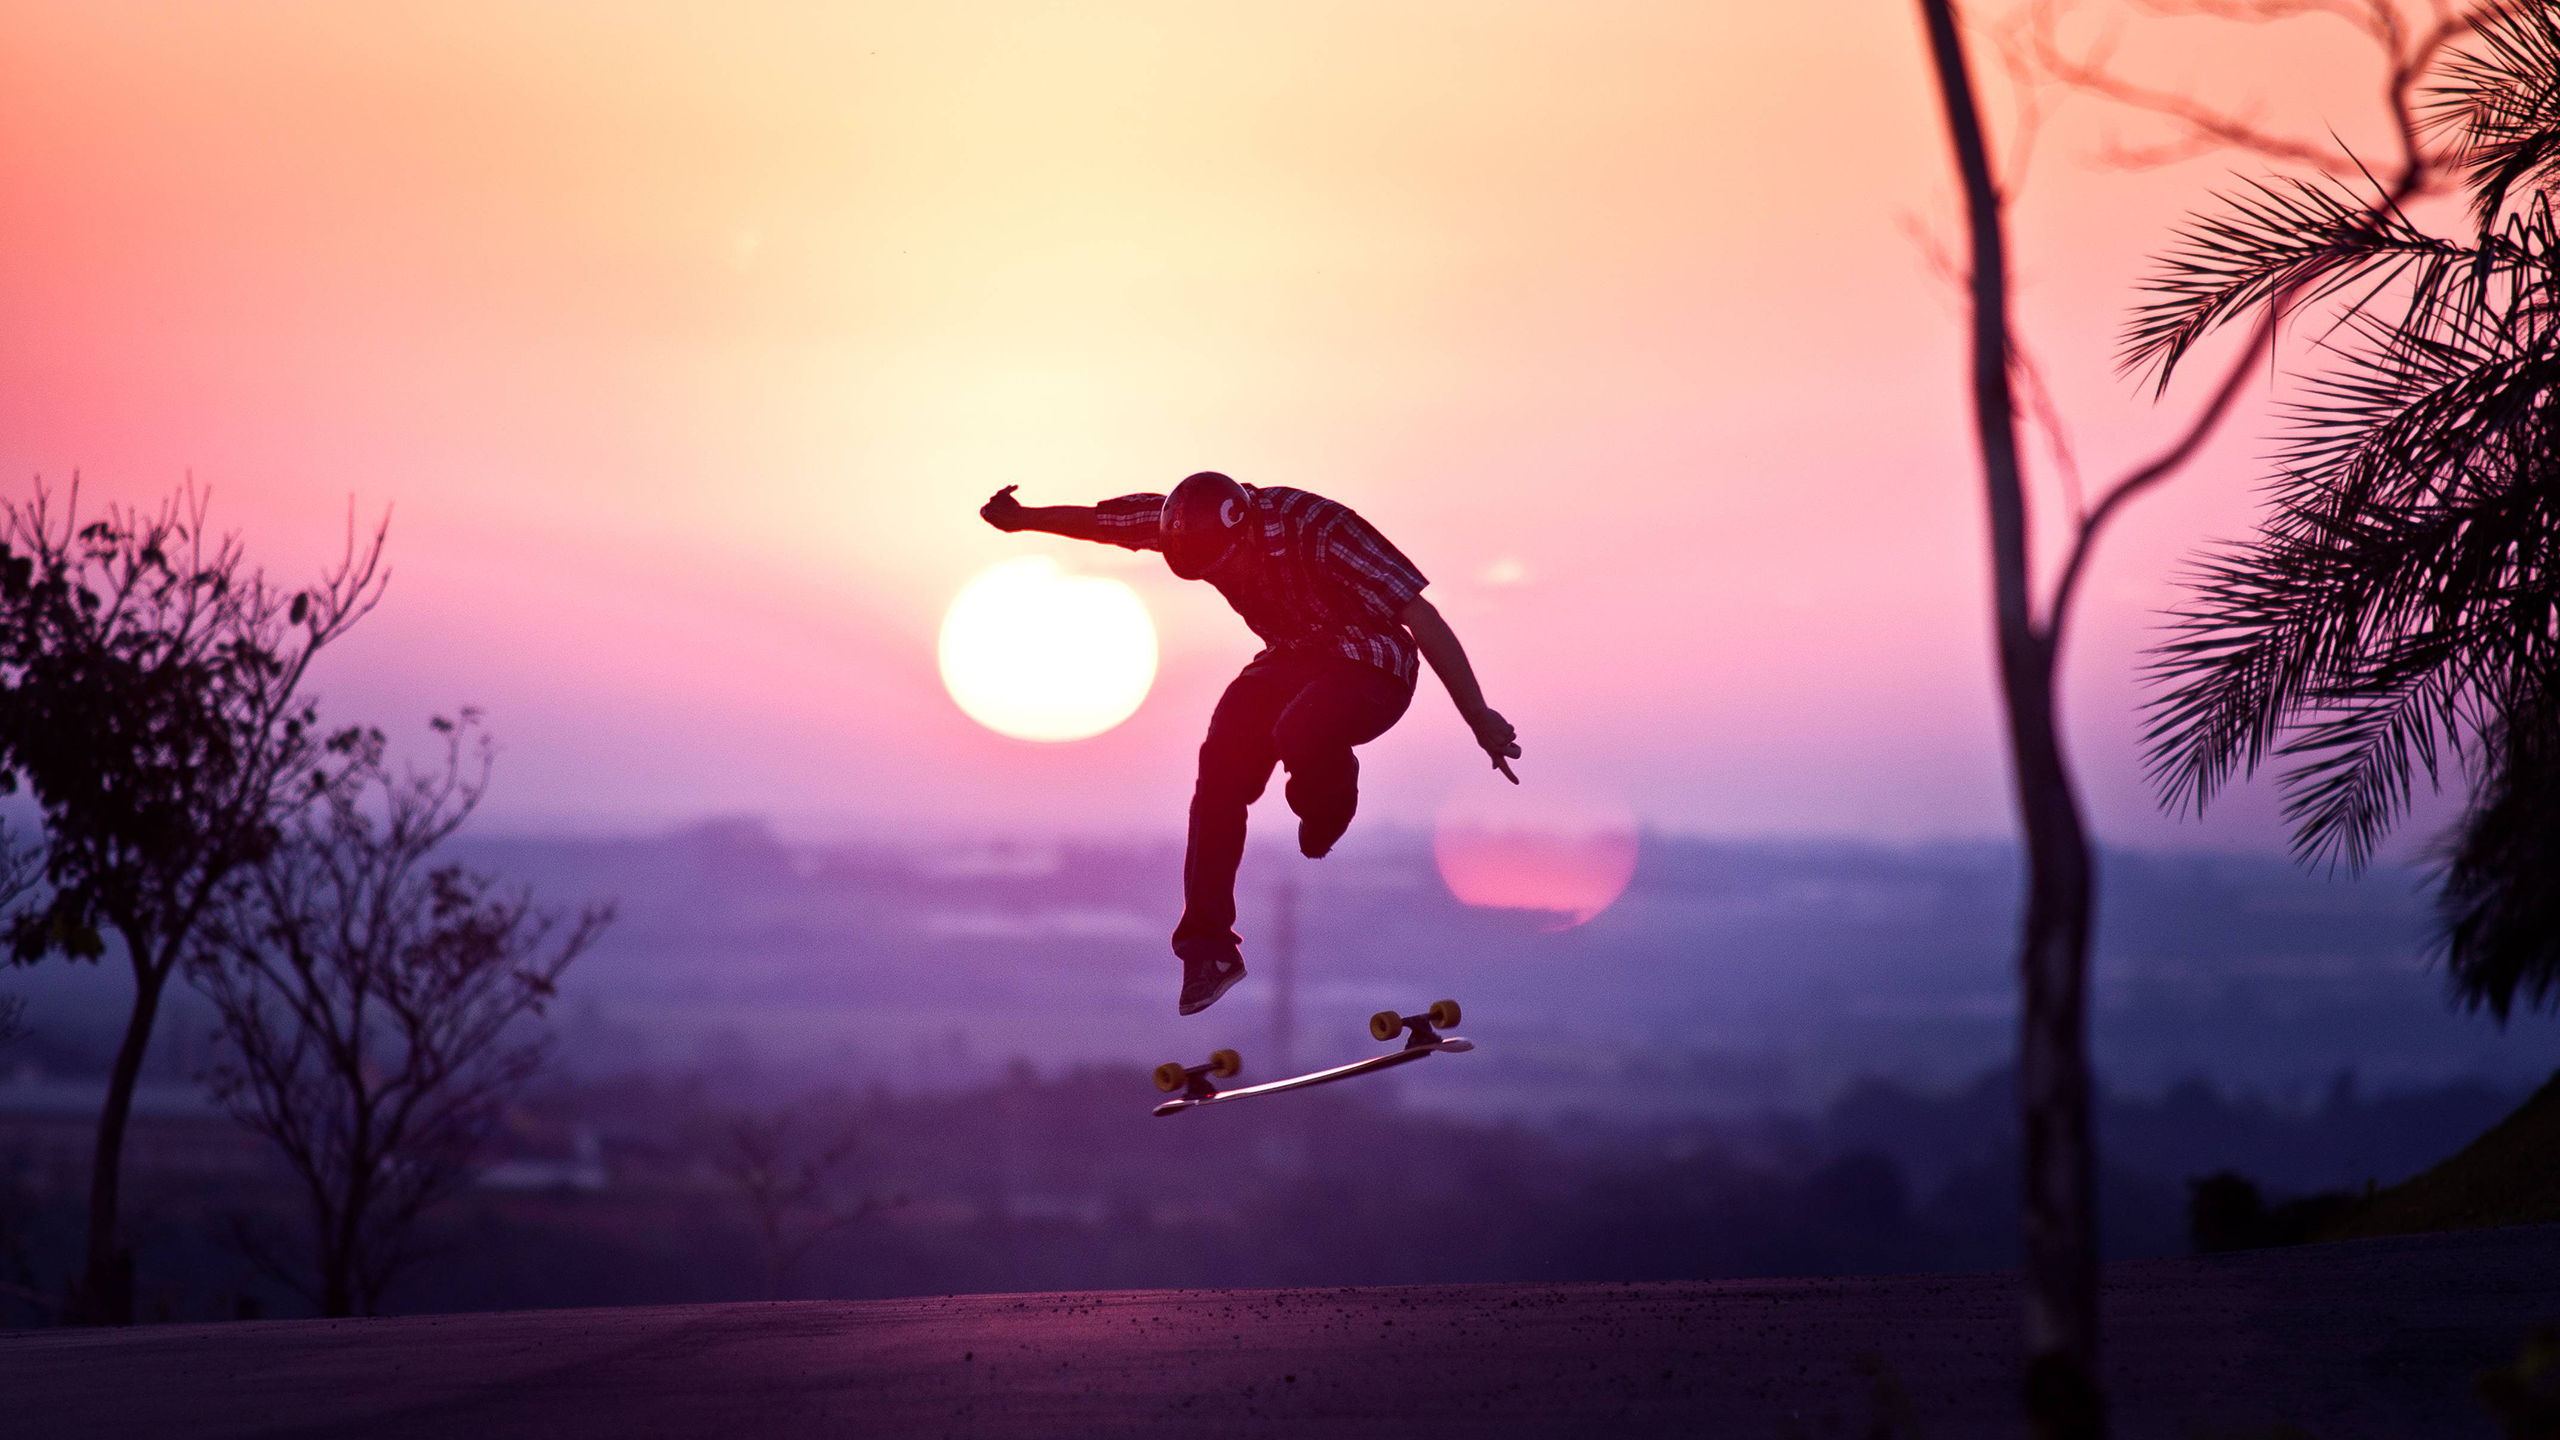 Skateboarding Wallpapers